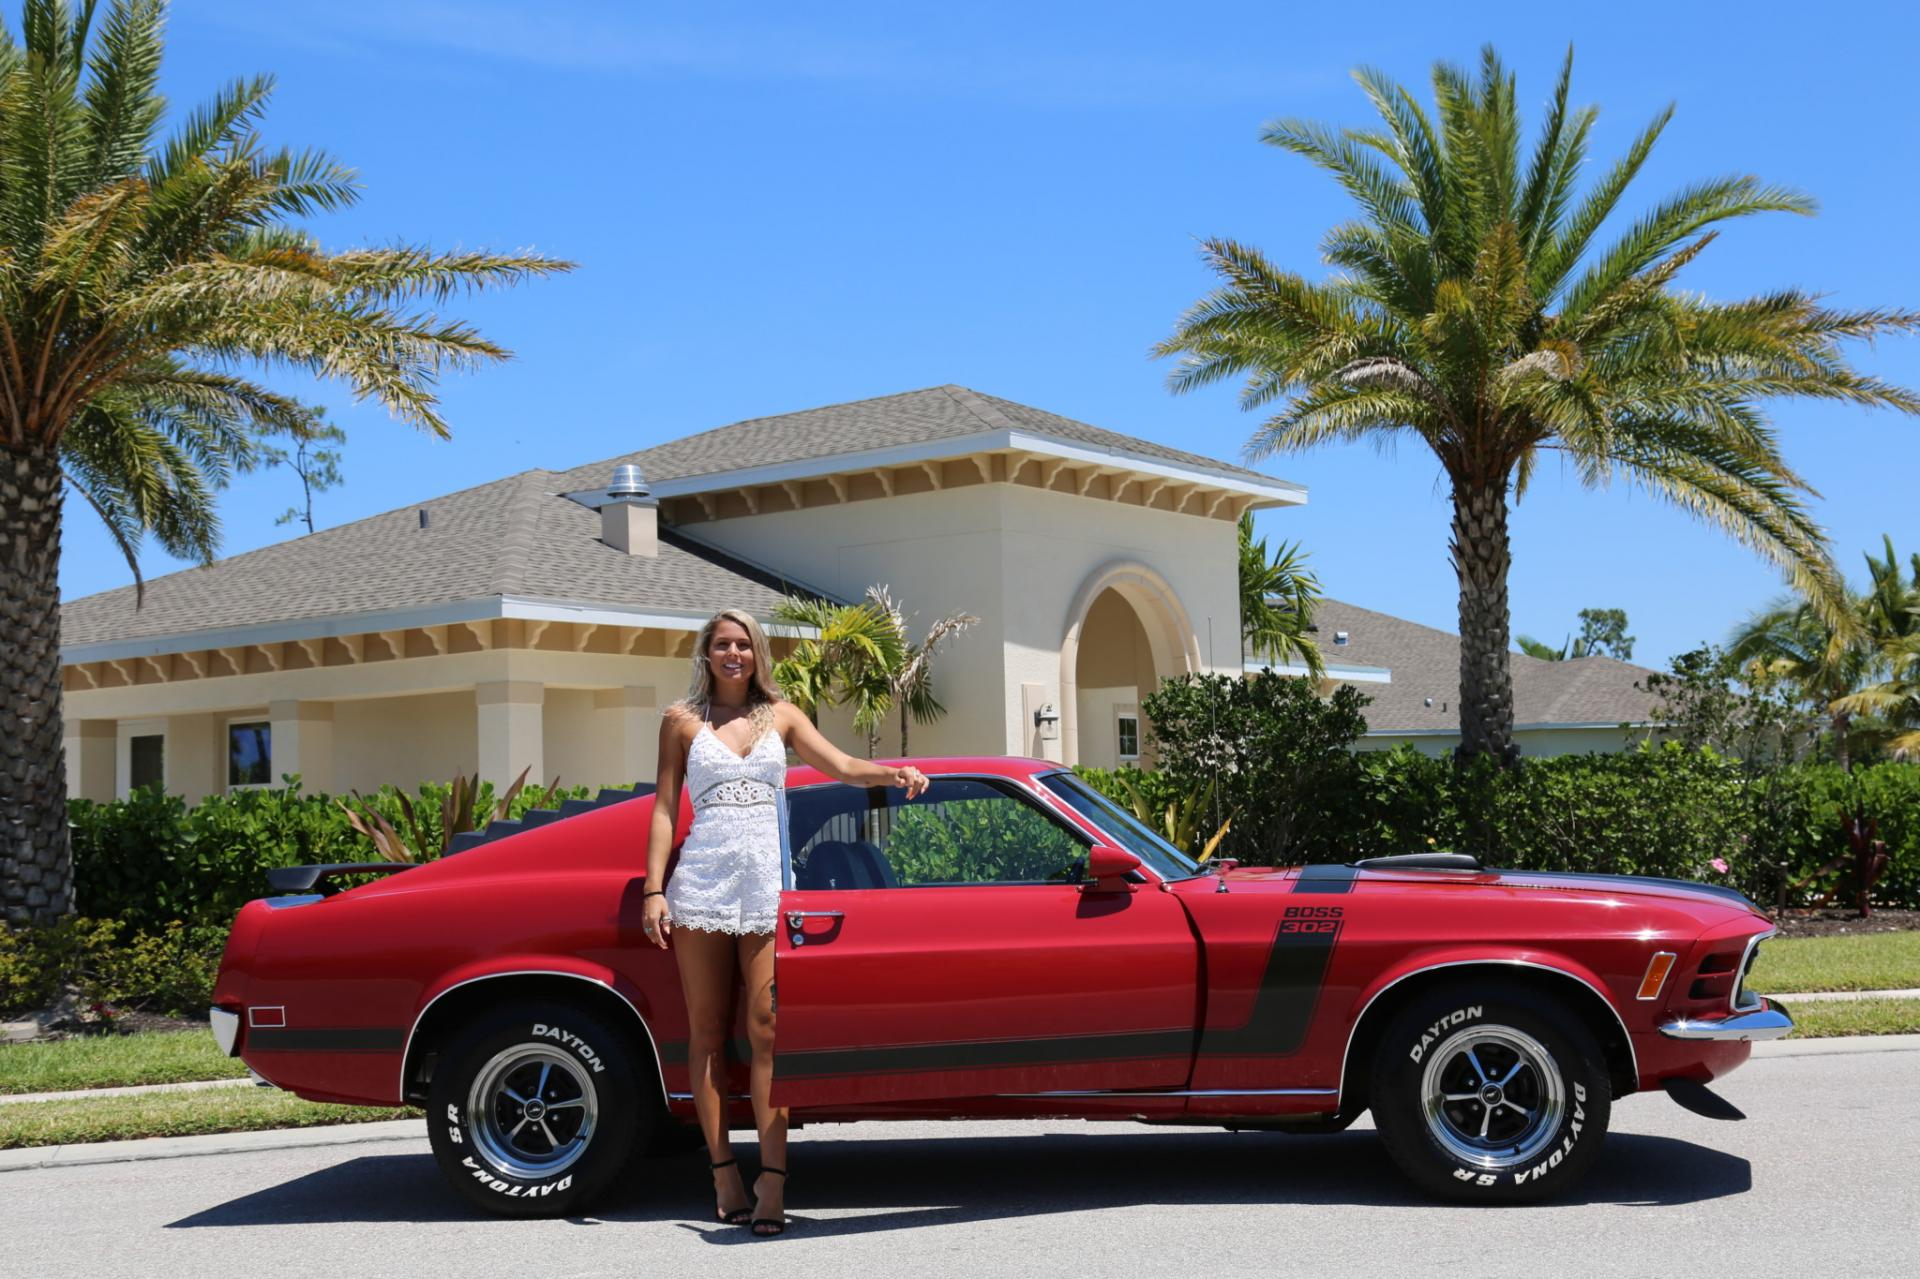 Used 1970 Ford Mustang 302 Boss for sale Sold at Muscle Cars for Sale Inc. in Fort Myers FL 33912 2